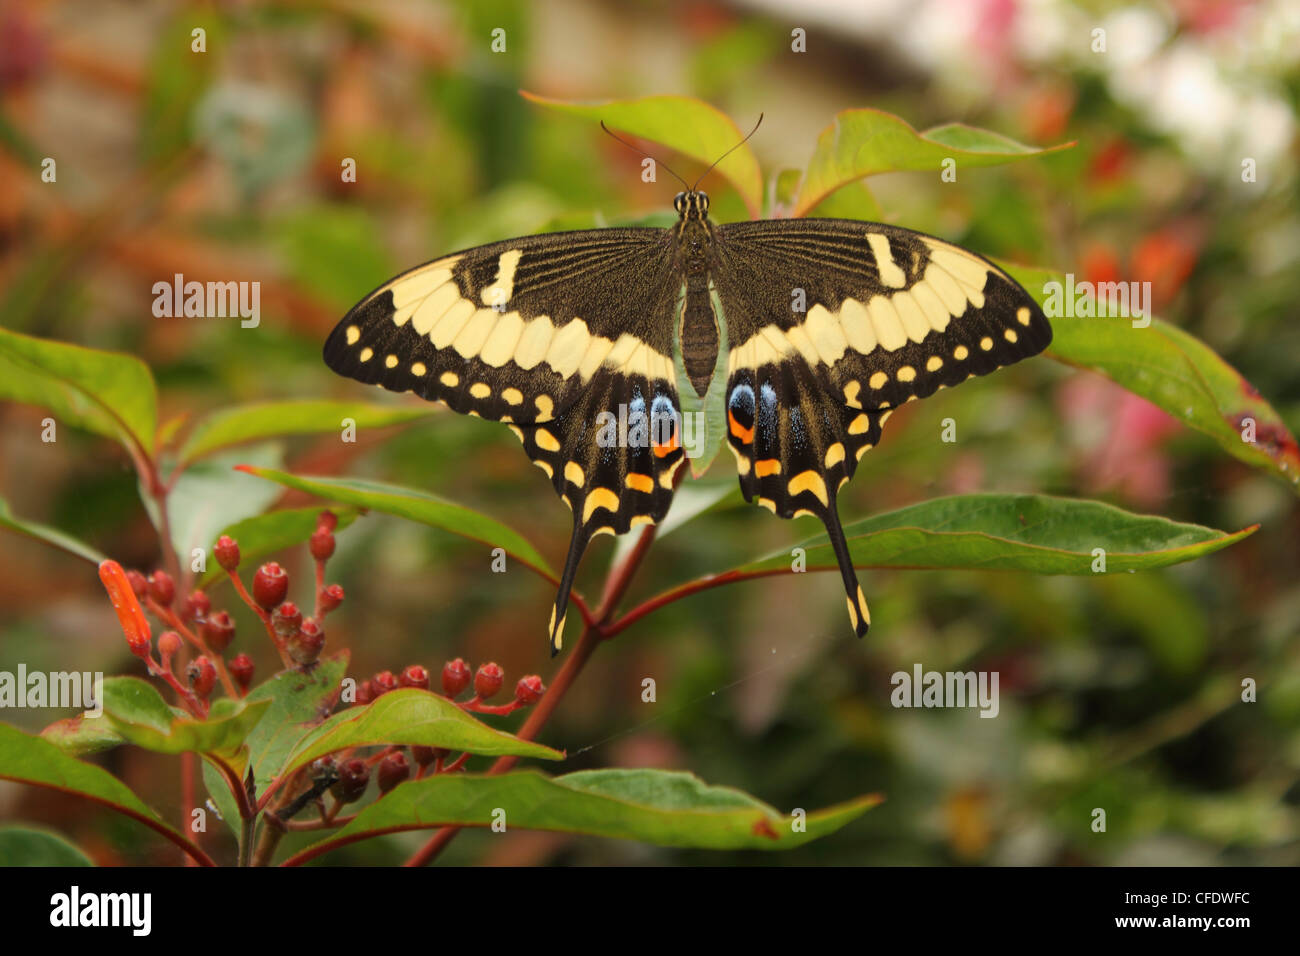 Swallowtail Butterfly (Papilionidae) - Stock Image